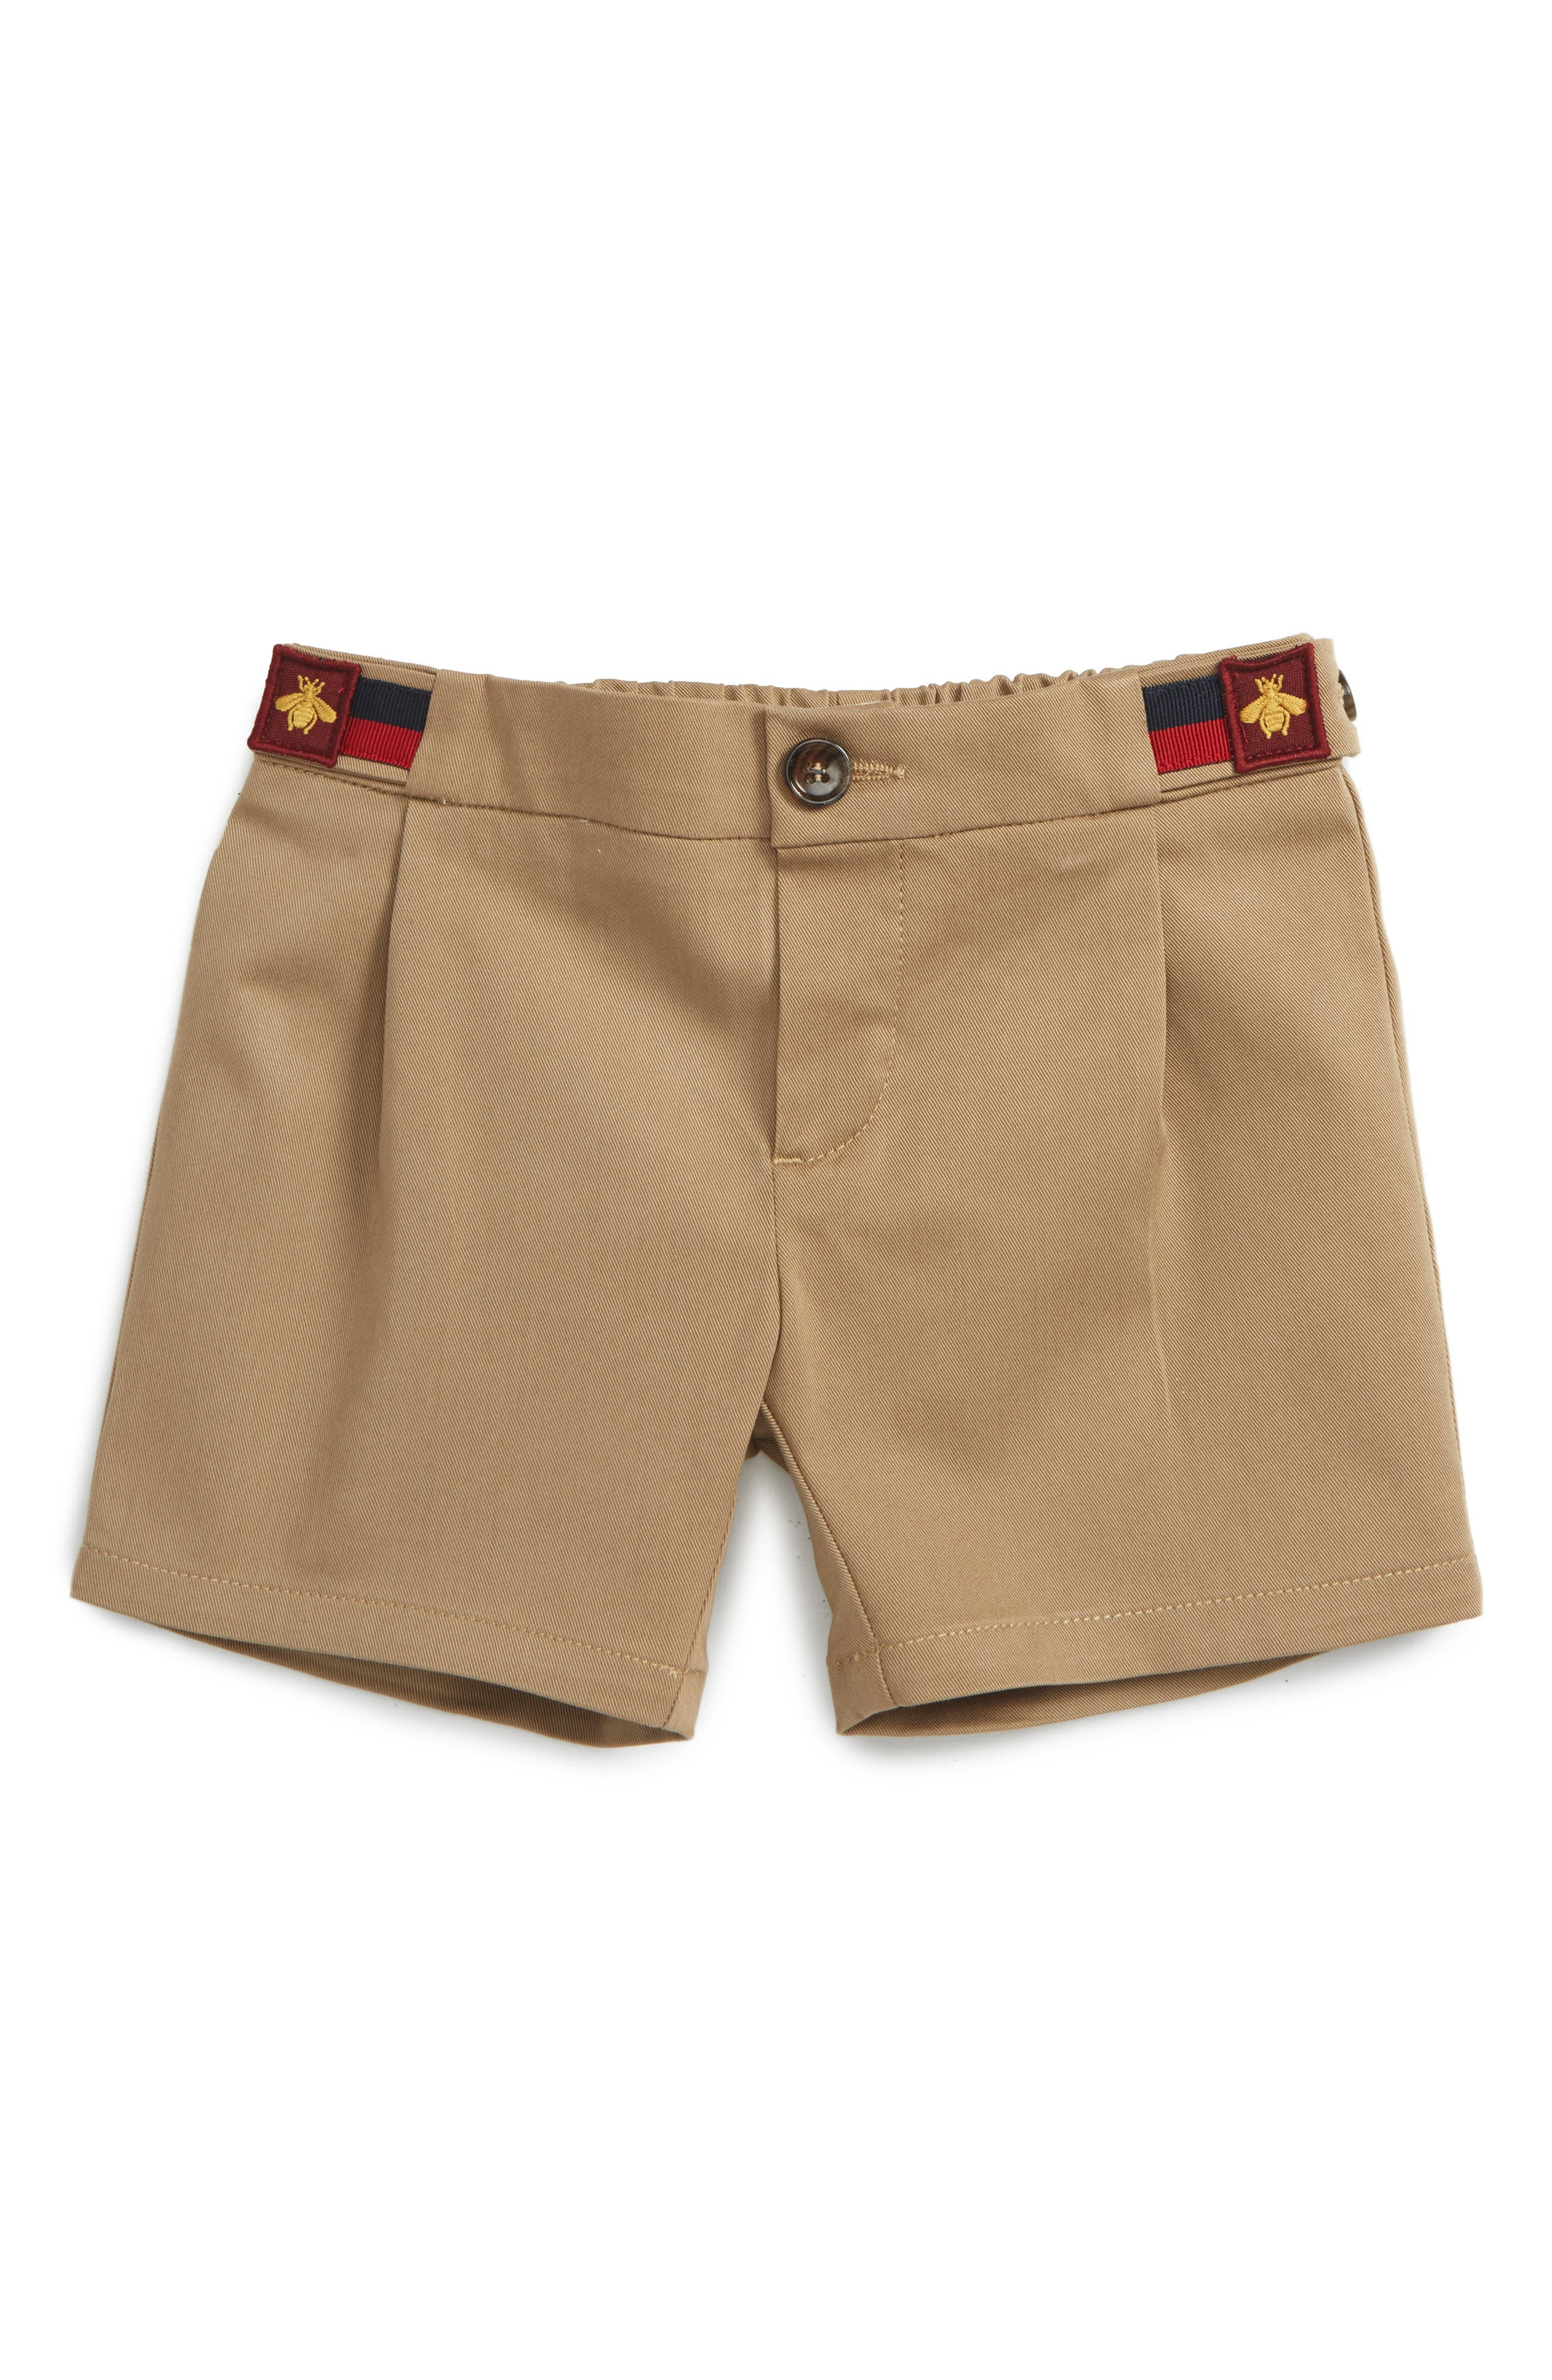 Gucci Bermuda Shorts (Baby Boys & Toddler Boys)